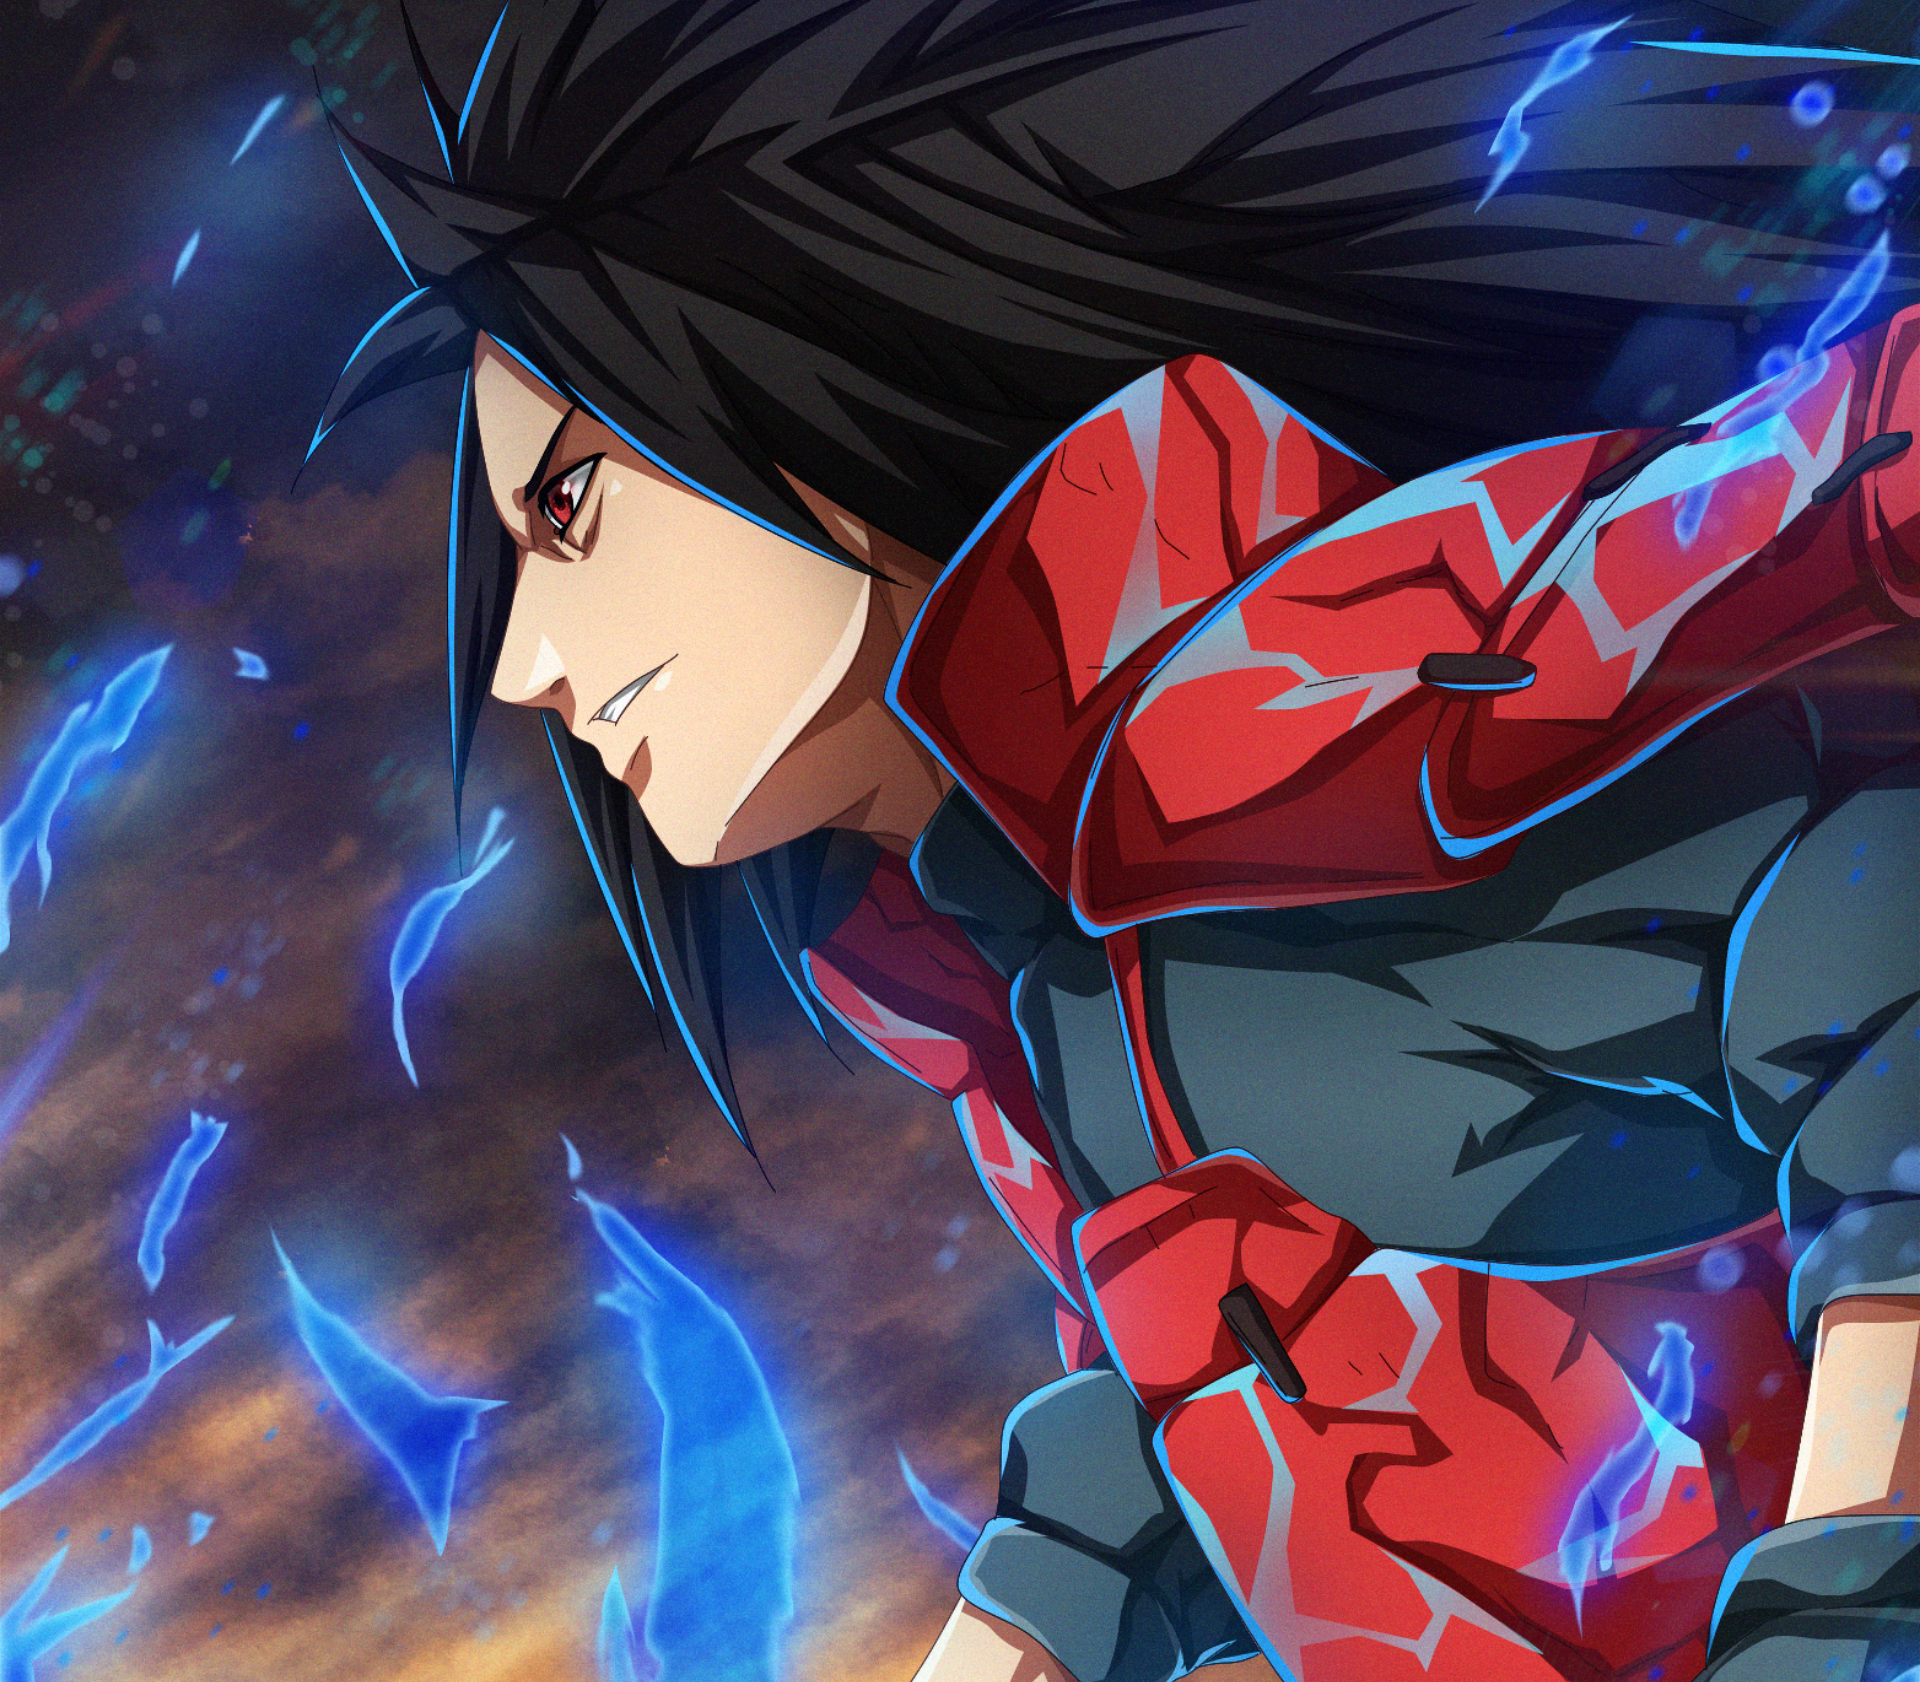 Naruto Hd Wallpaper Background Image 1920x1682 Id 946090 Wallpaper Abyss